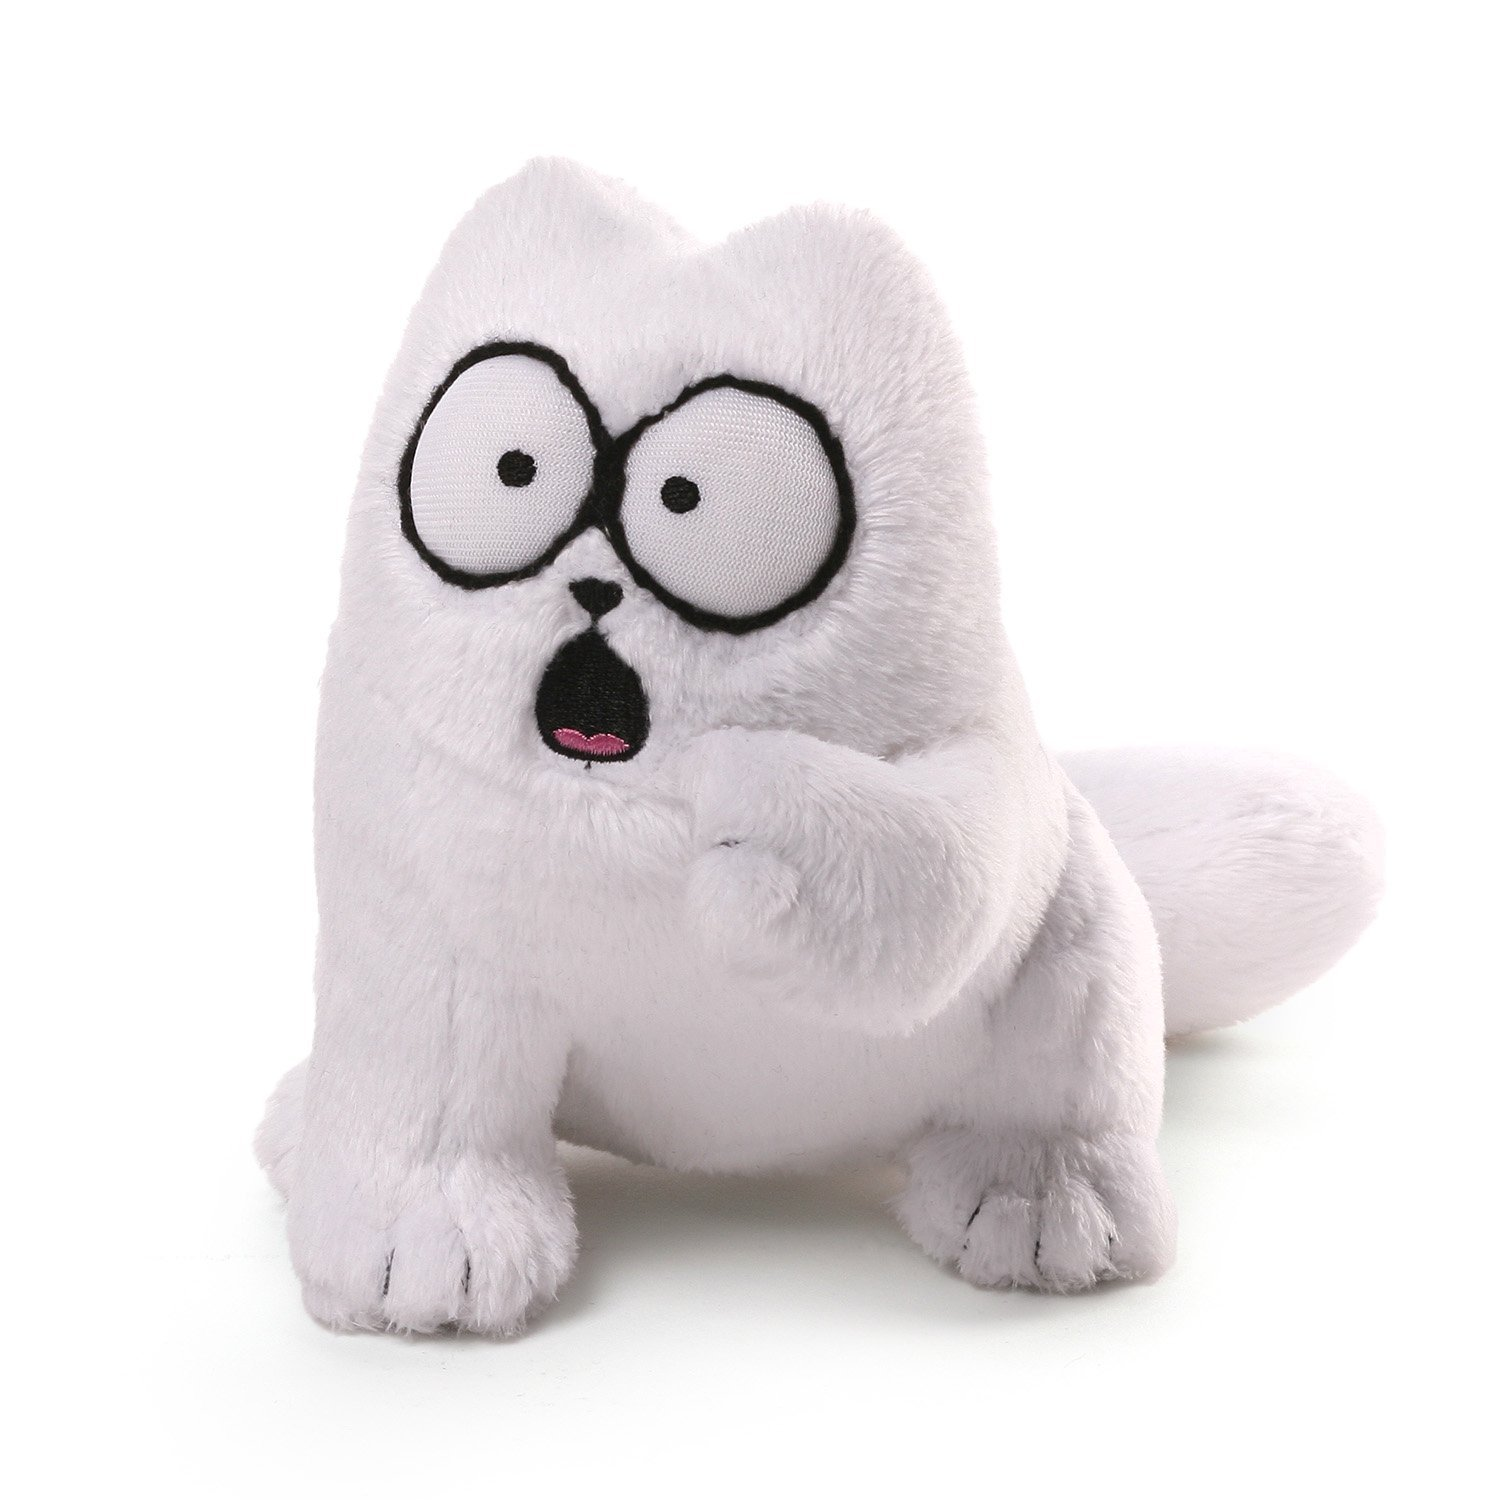 Gund Simon's Cat Stuffed Animal Plush, 6""